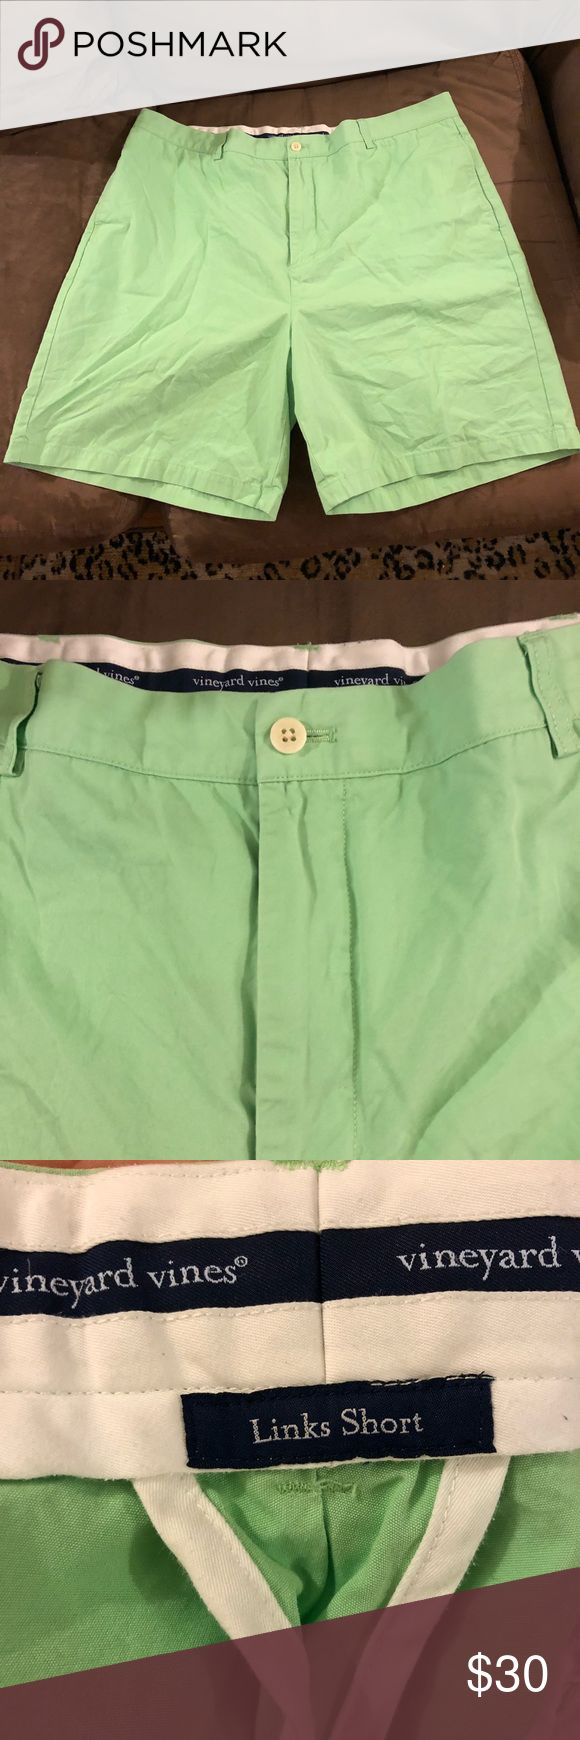 Vineyard Vines Lime Green Shorts Size 42 Vineyard Vines Solid Lime Green Link Shorts Size 42! Great condition! Flat Front! Please make reasonable offers and bundle! Ask questions! Vineyard Vines Shorts Flat Front